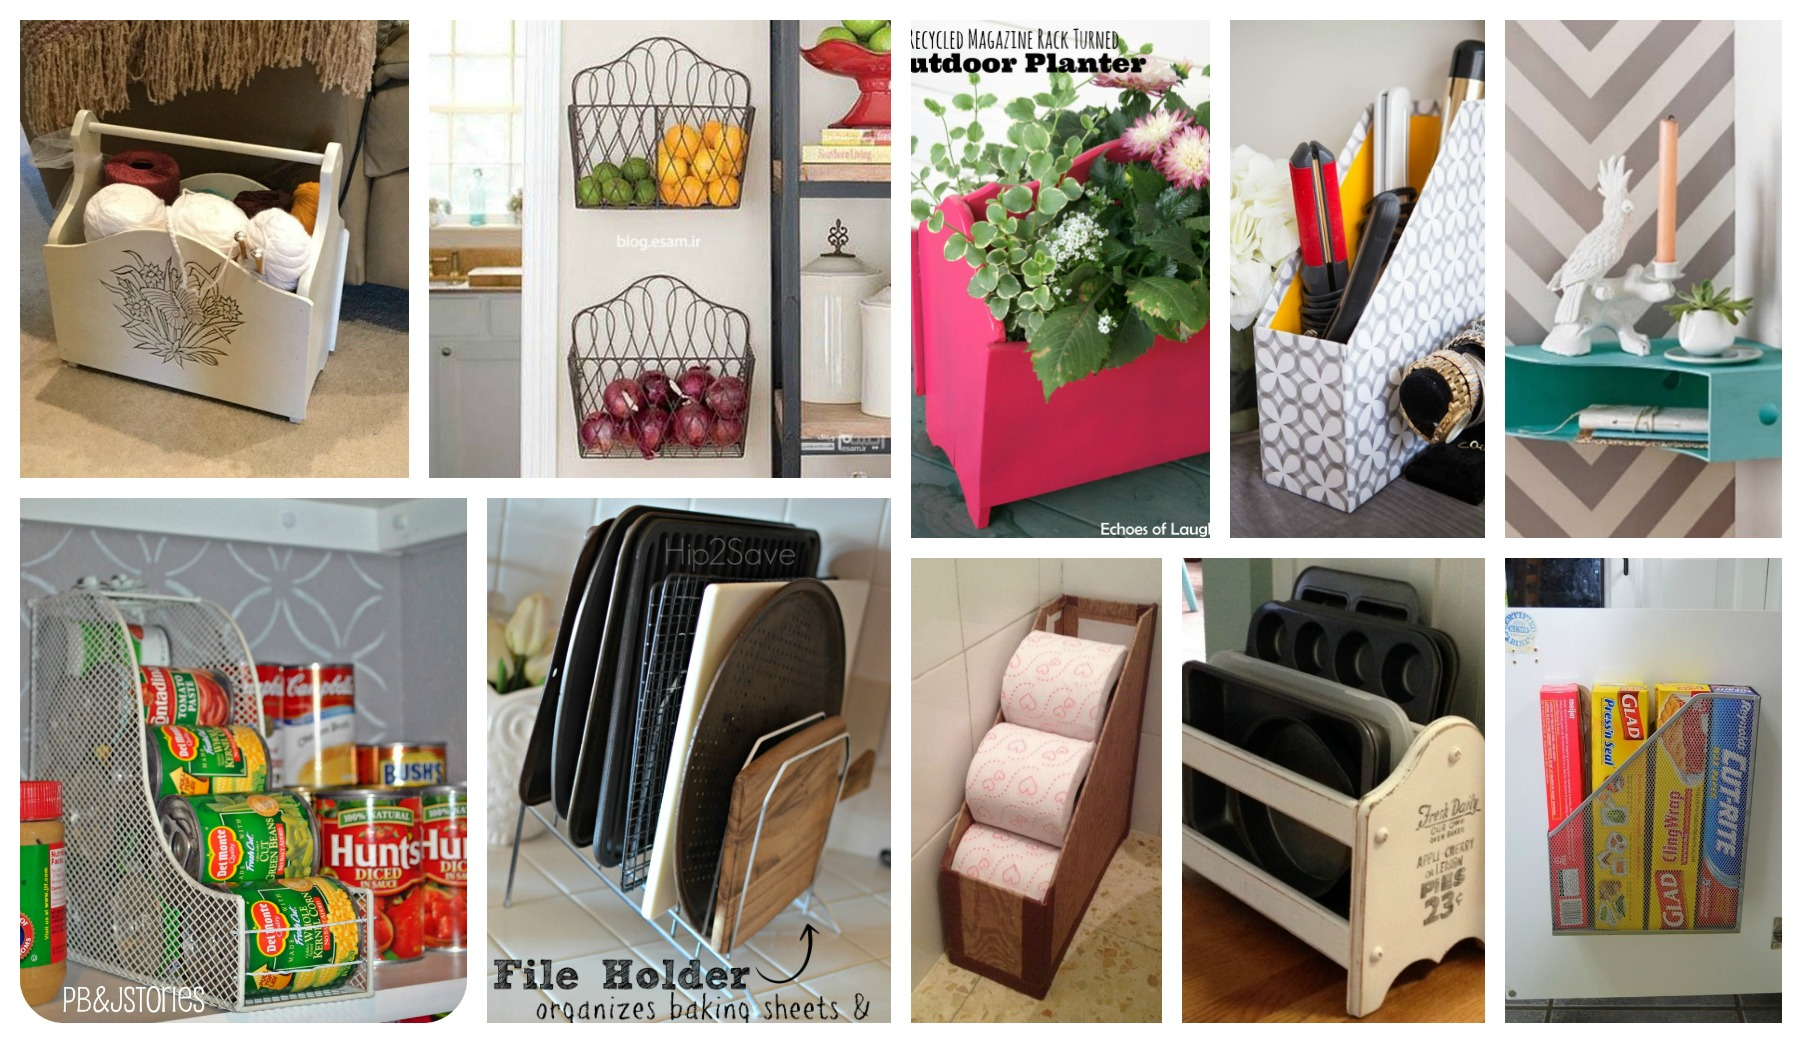 The Best Functional Ways To Repurpose The Old Magazine Rack